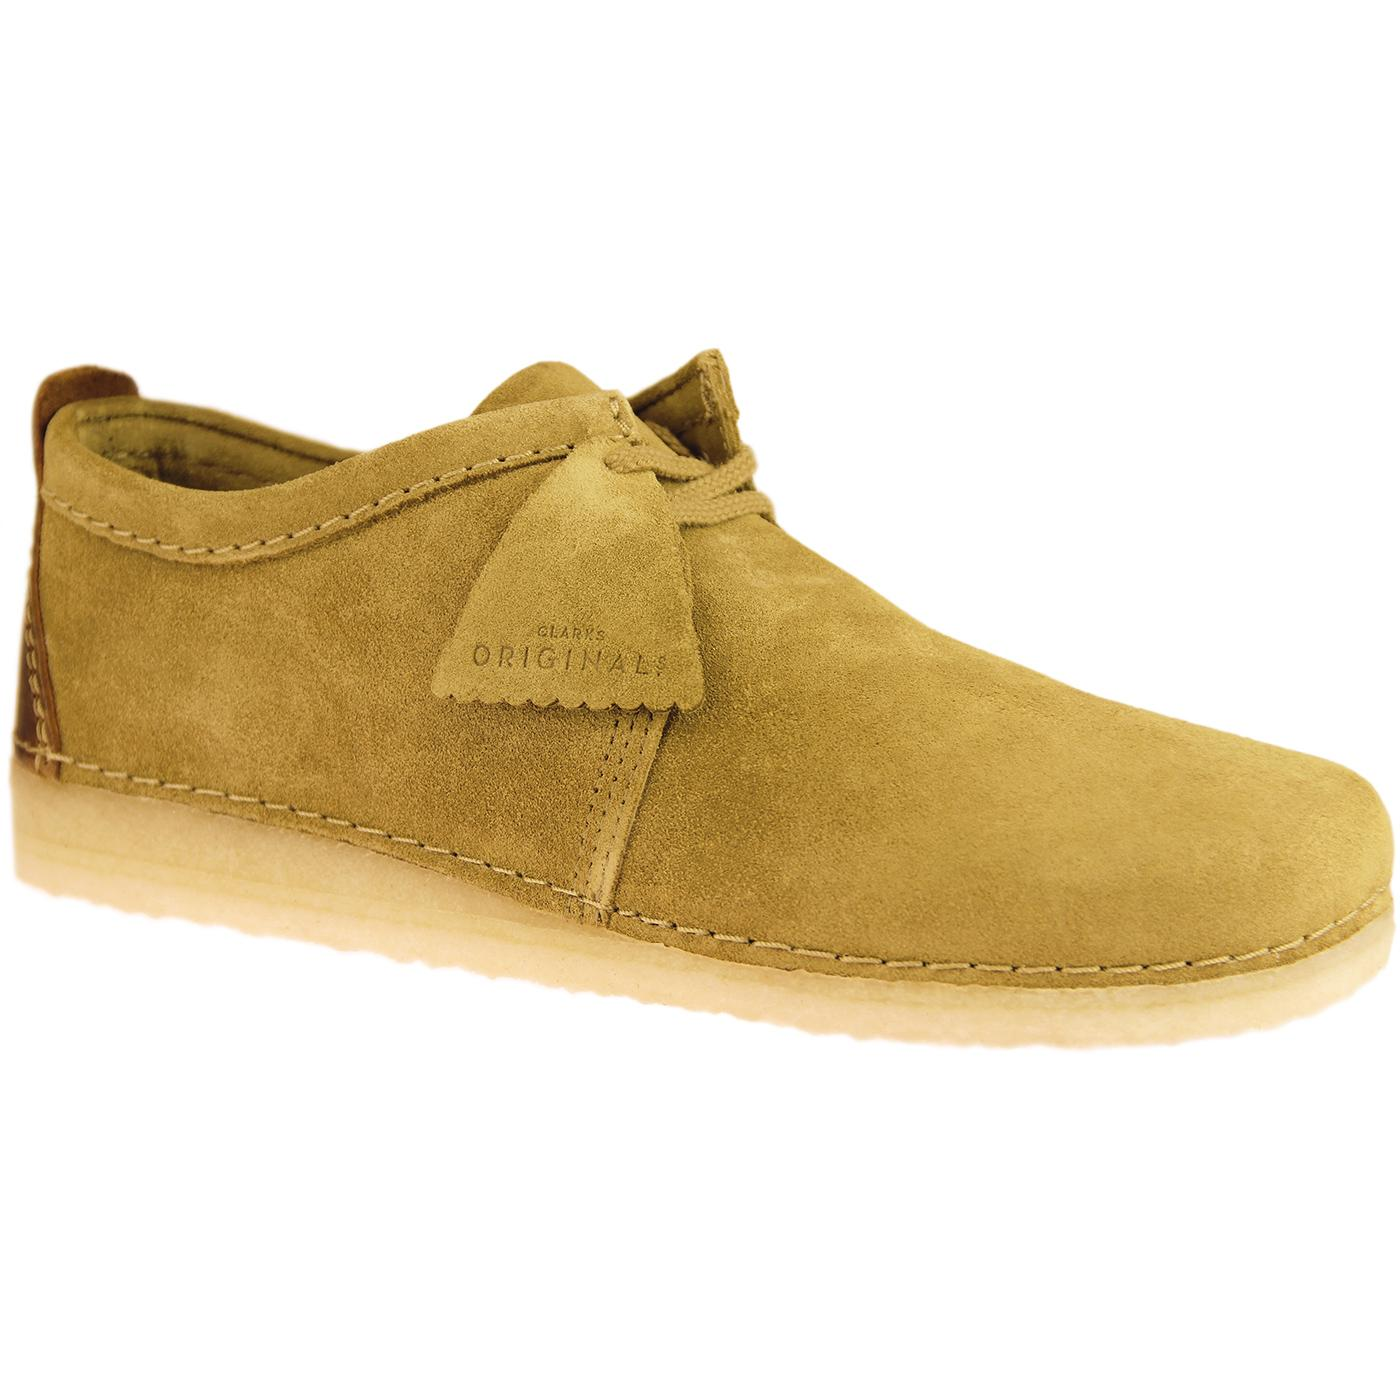 Ashton CLARKS ORIGINALS Retro Mod Suede Shoes OAK